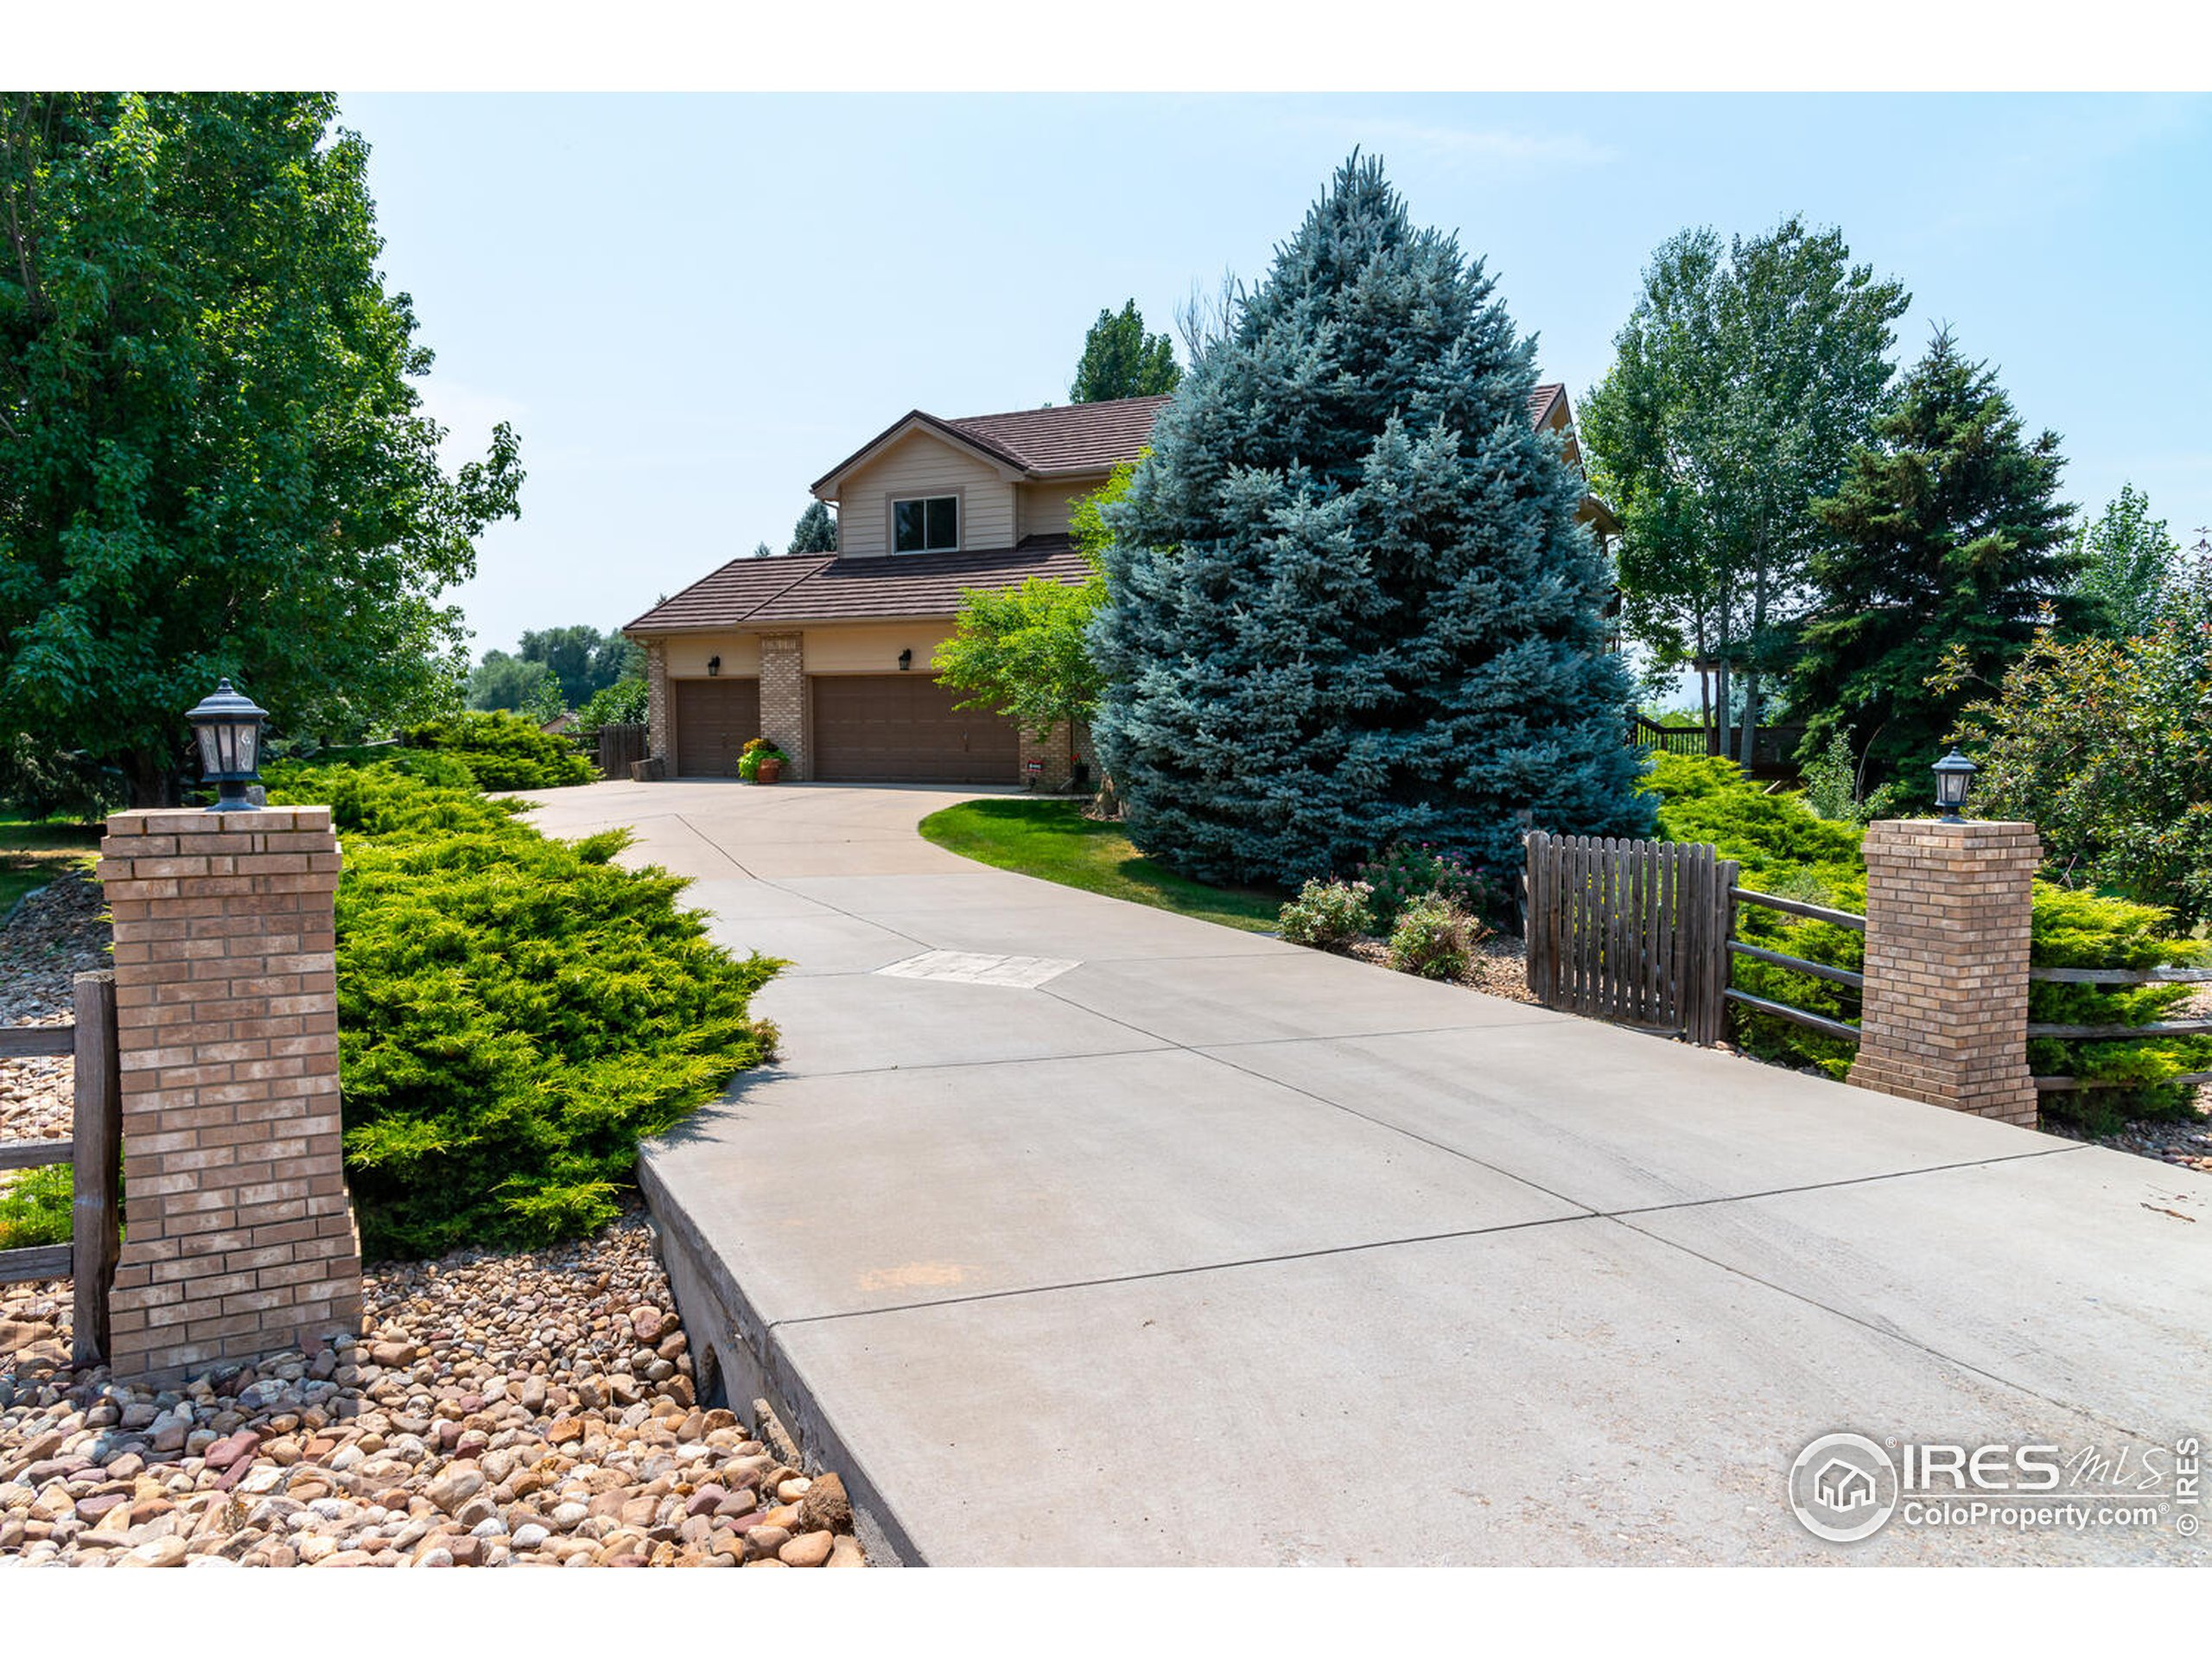 Private lot with long driveway to 3 car garage